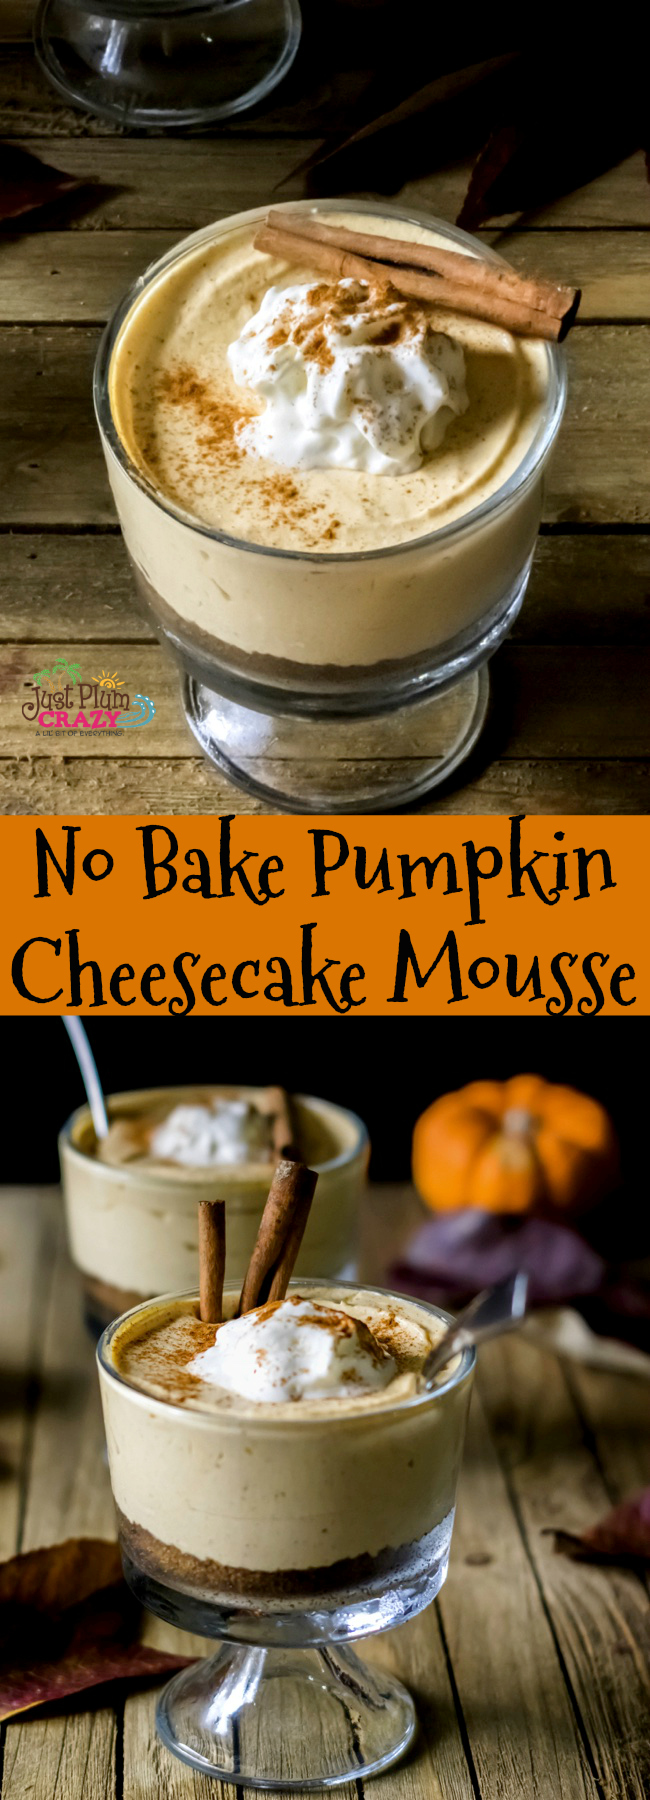 Simply scrumptious and easy to make No Bake Pumpkin Cheesecake Mousse recipe that is a perfect dessert for any fall dinner event.